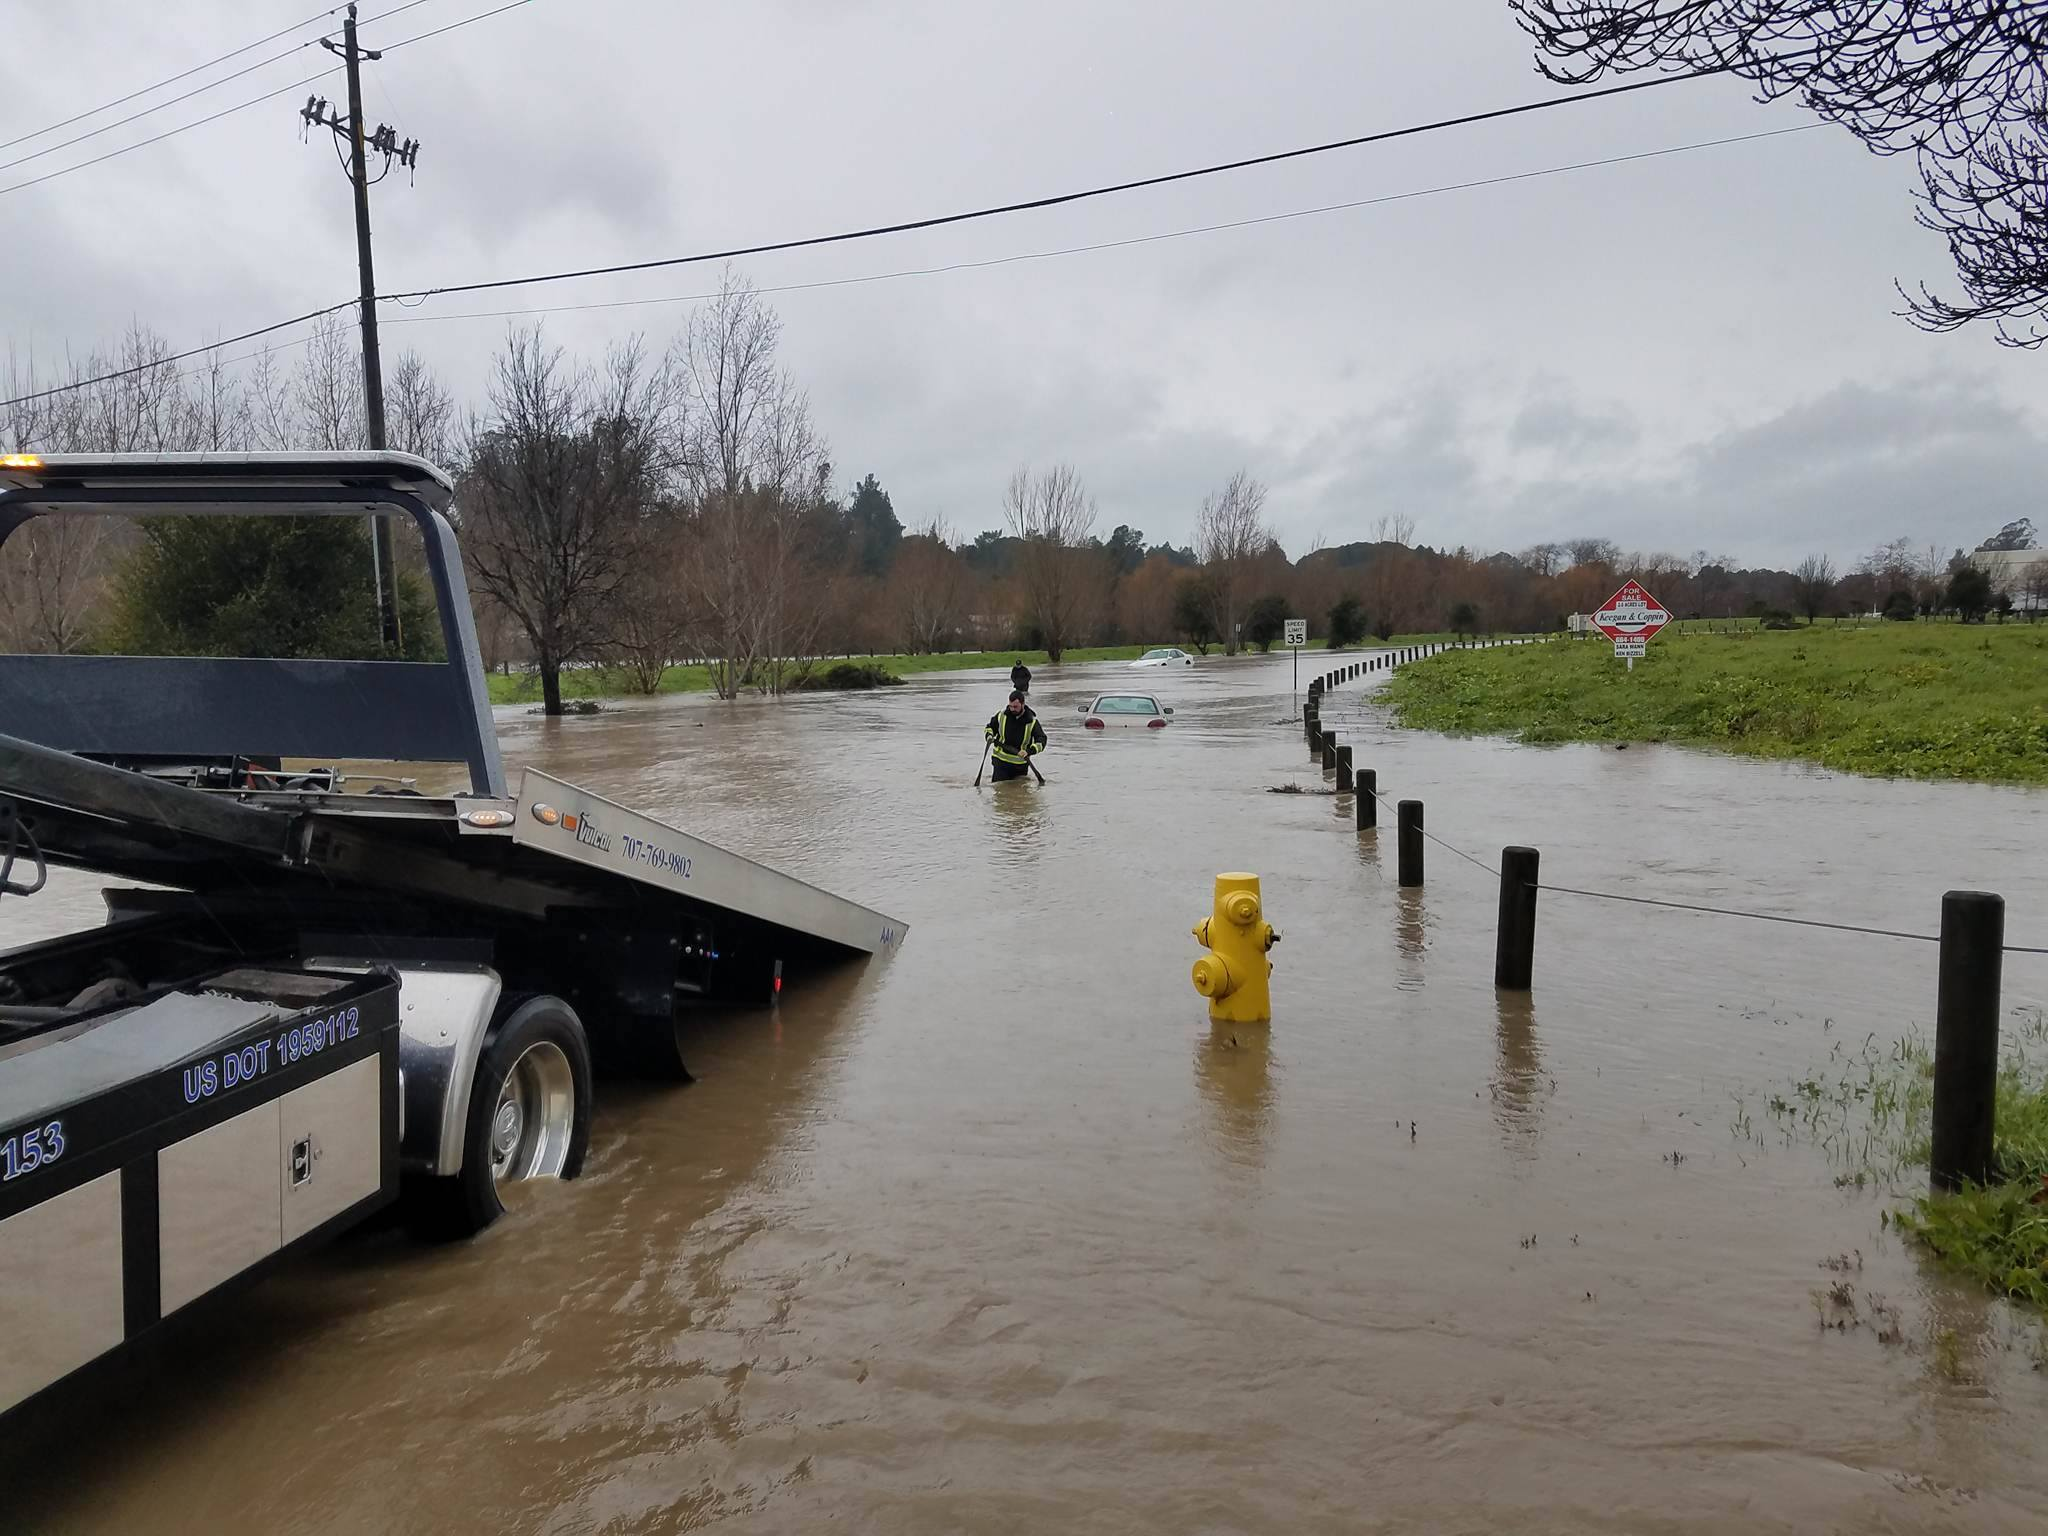 "<div class=""meta image-caption""><div class=""origin-logo origin-image none""><span>none</span></div><span class=""caption-text"">A car was towed away from flood waters in Petaluma on Jan. 8, 2017. (Cameron Reeder/Facebook)</span></div>"